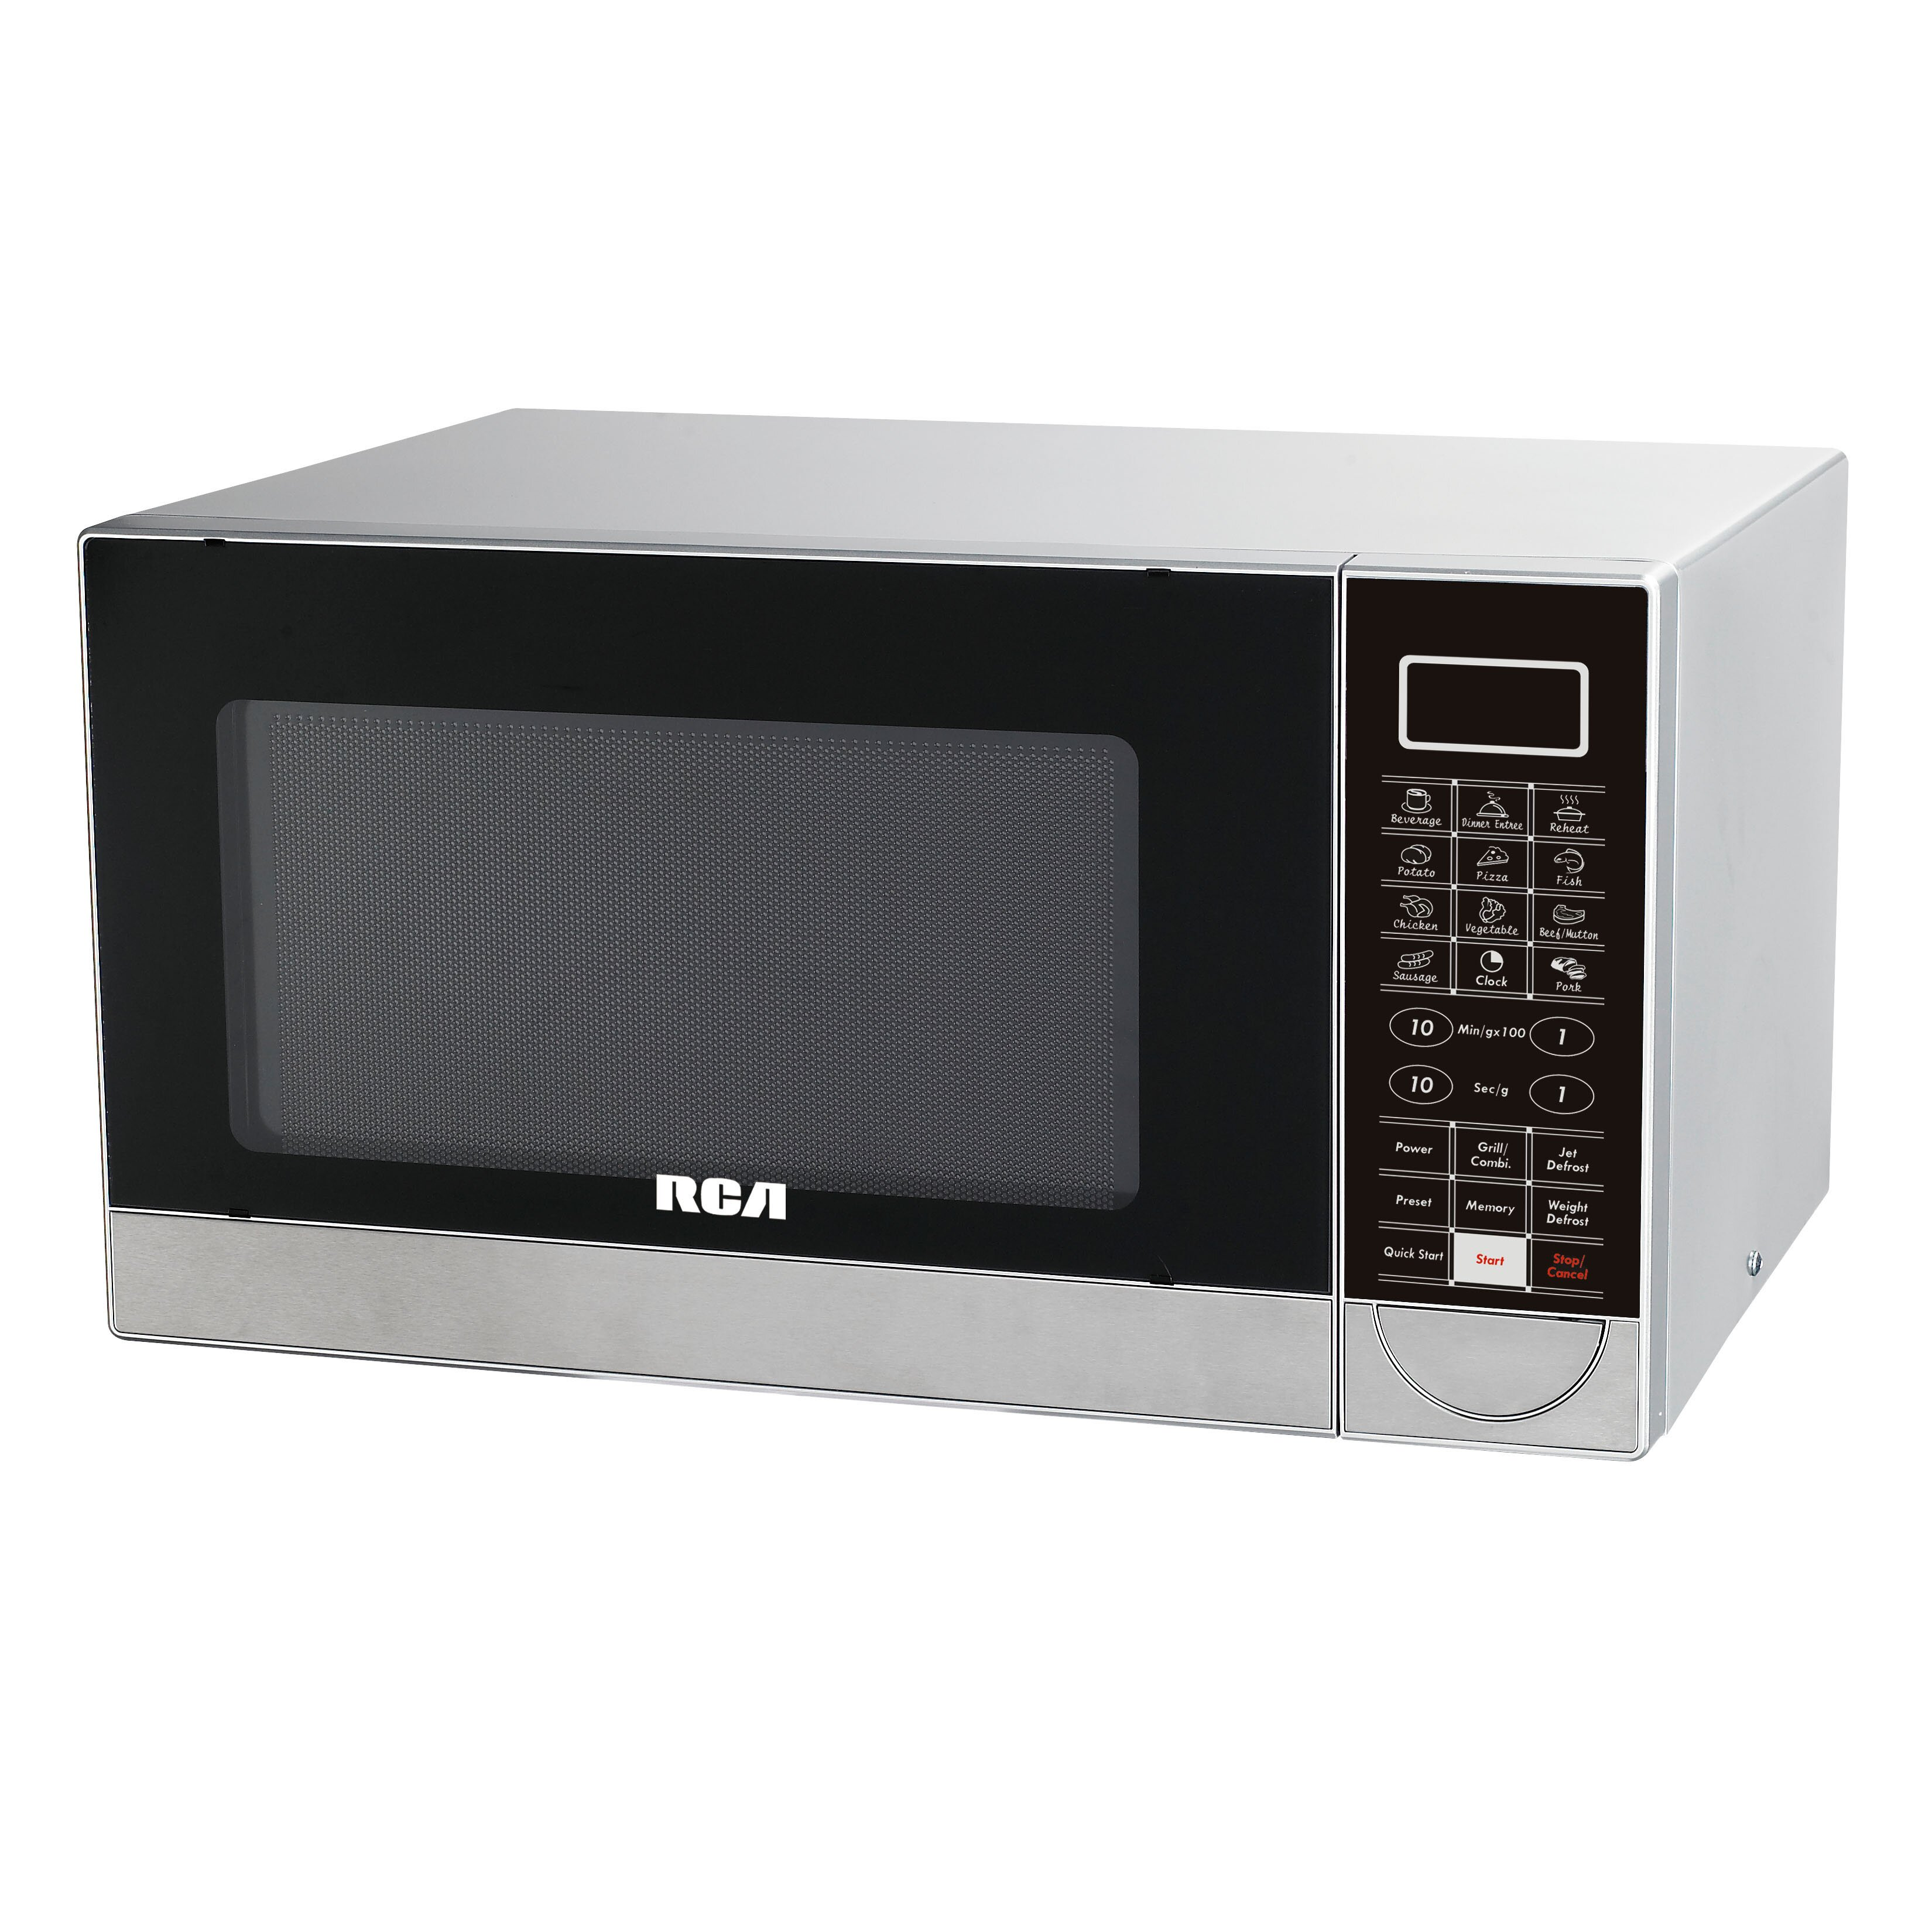 Countertop Microwave Grill : ... Products 1.1 Cu. Ft. 1000W Countertop Microwave & Reviews Wayfair.ca